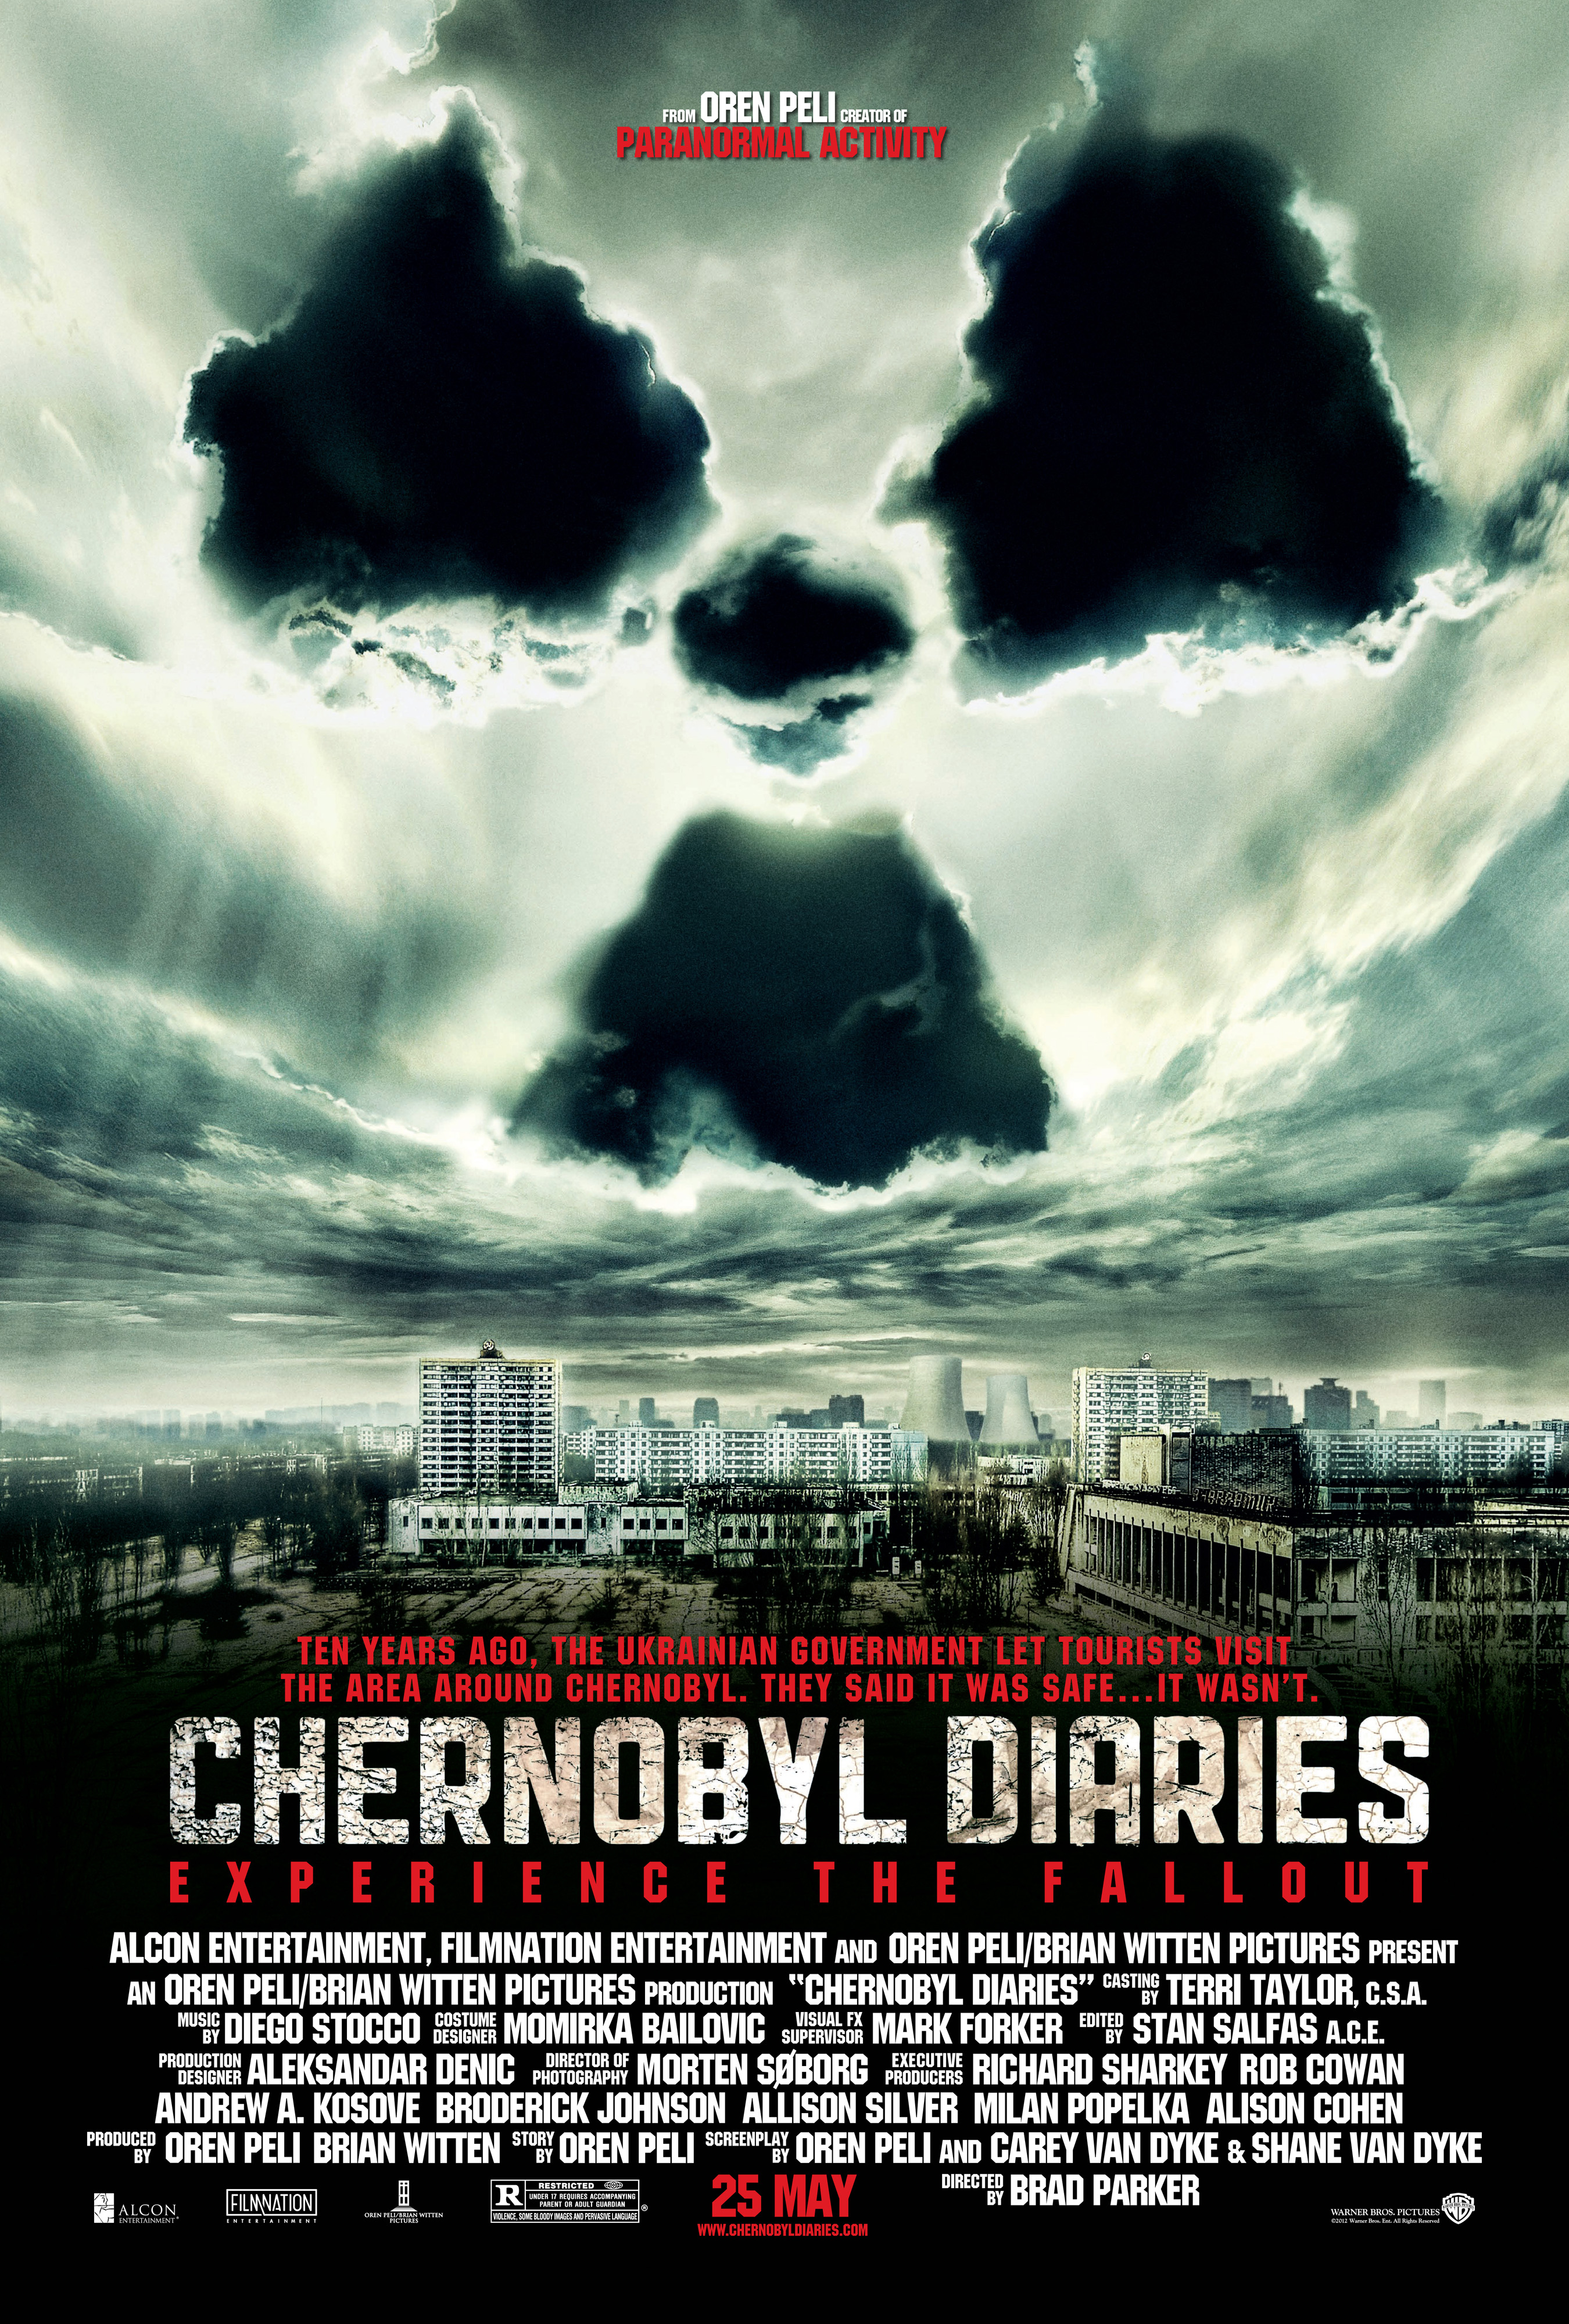 Closer to Death] 'Chernobyl Diaries' and The Death Zone